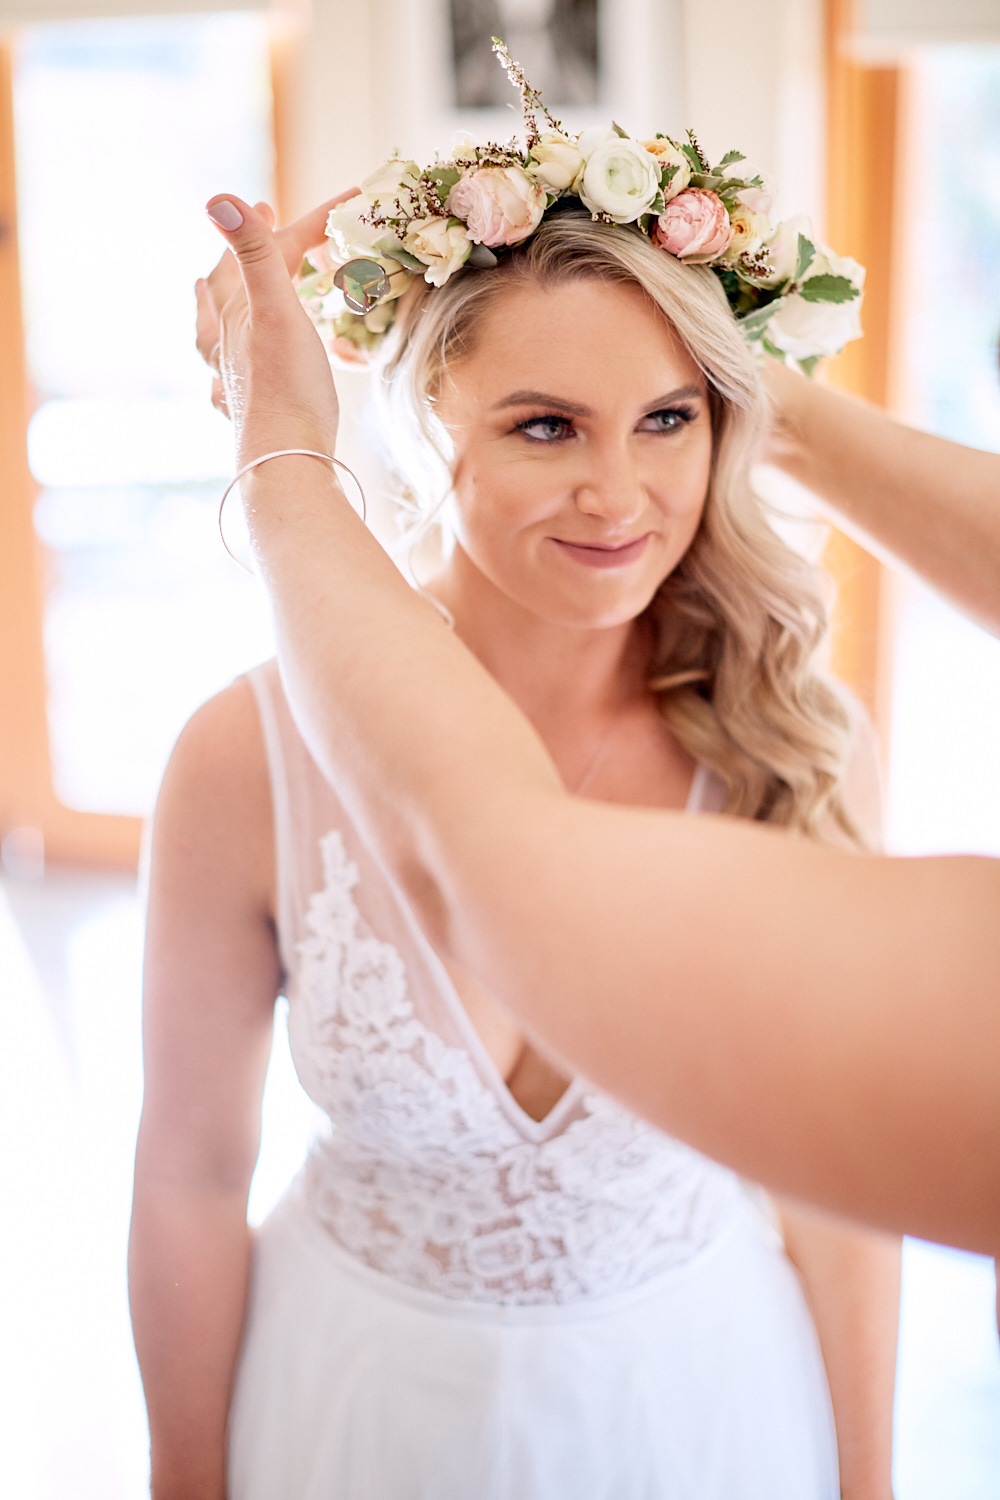 Bride putting on flower crown in her wedding dress at Estate Tuscany Pokolbin in the Hunter Valley by wedding photographer Joshua Witheford